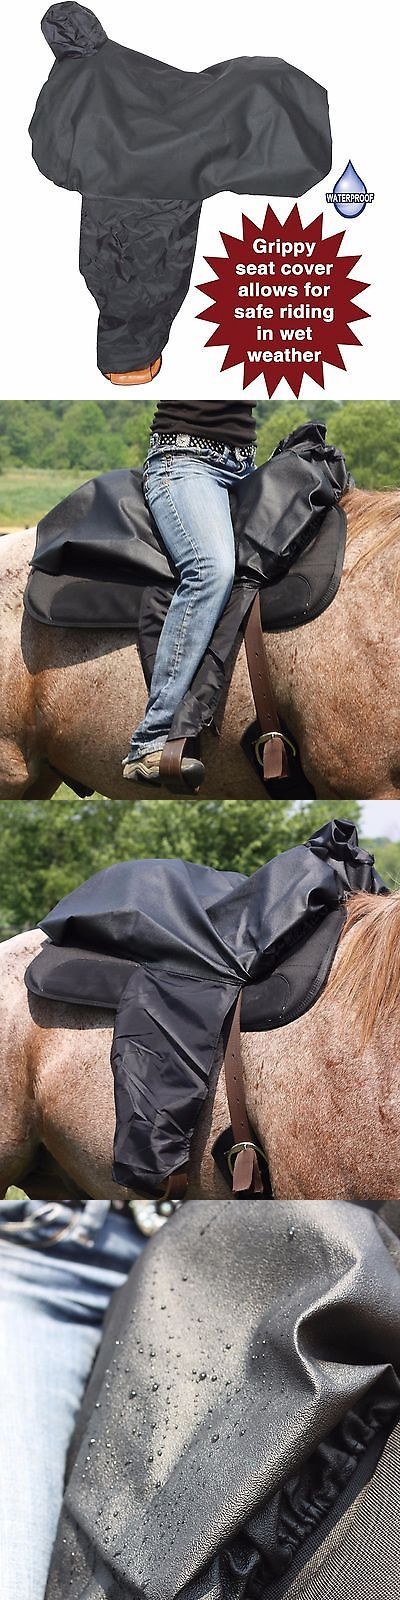 Saddle Covers 179000: Sureseat All Weather Western Saddle Cover By Dura-Tech BUY IT NOW ONLY: $35.0